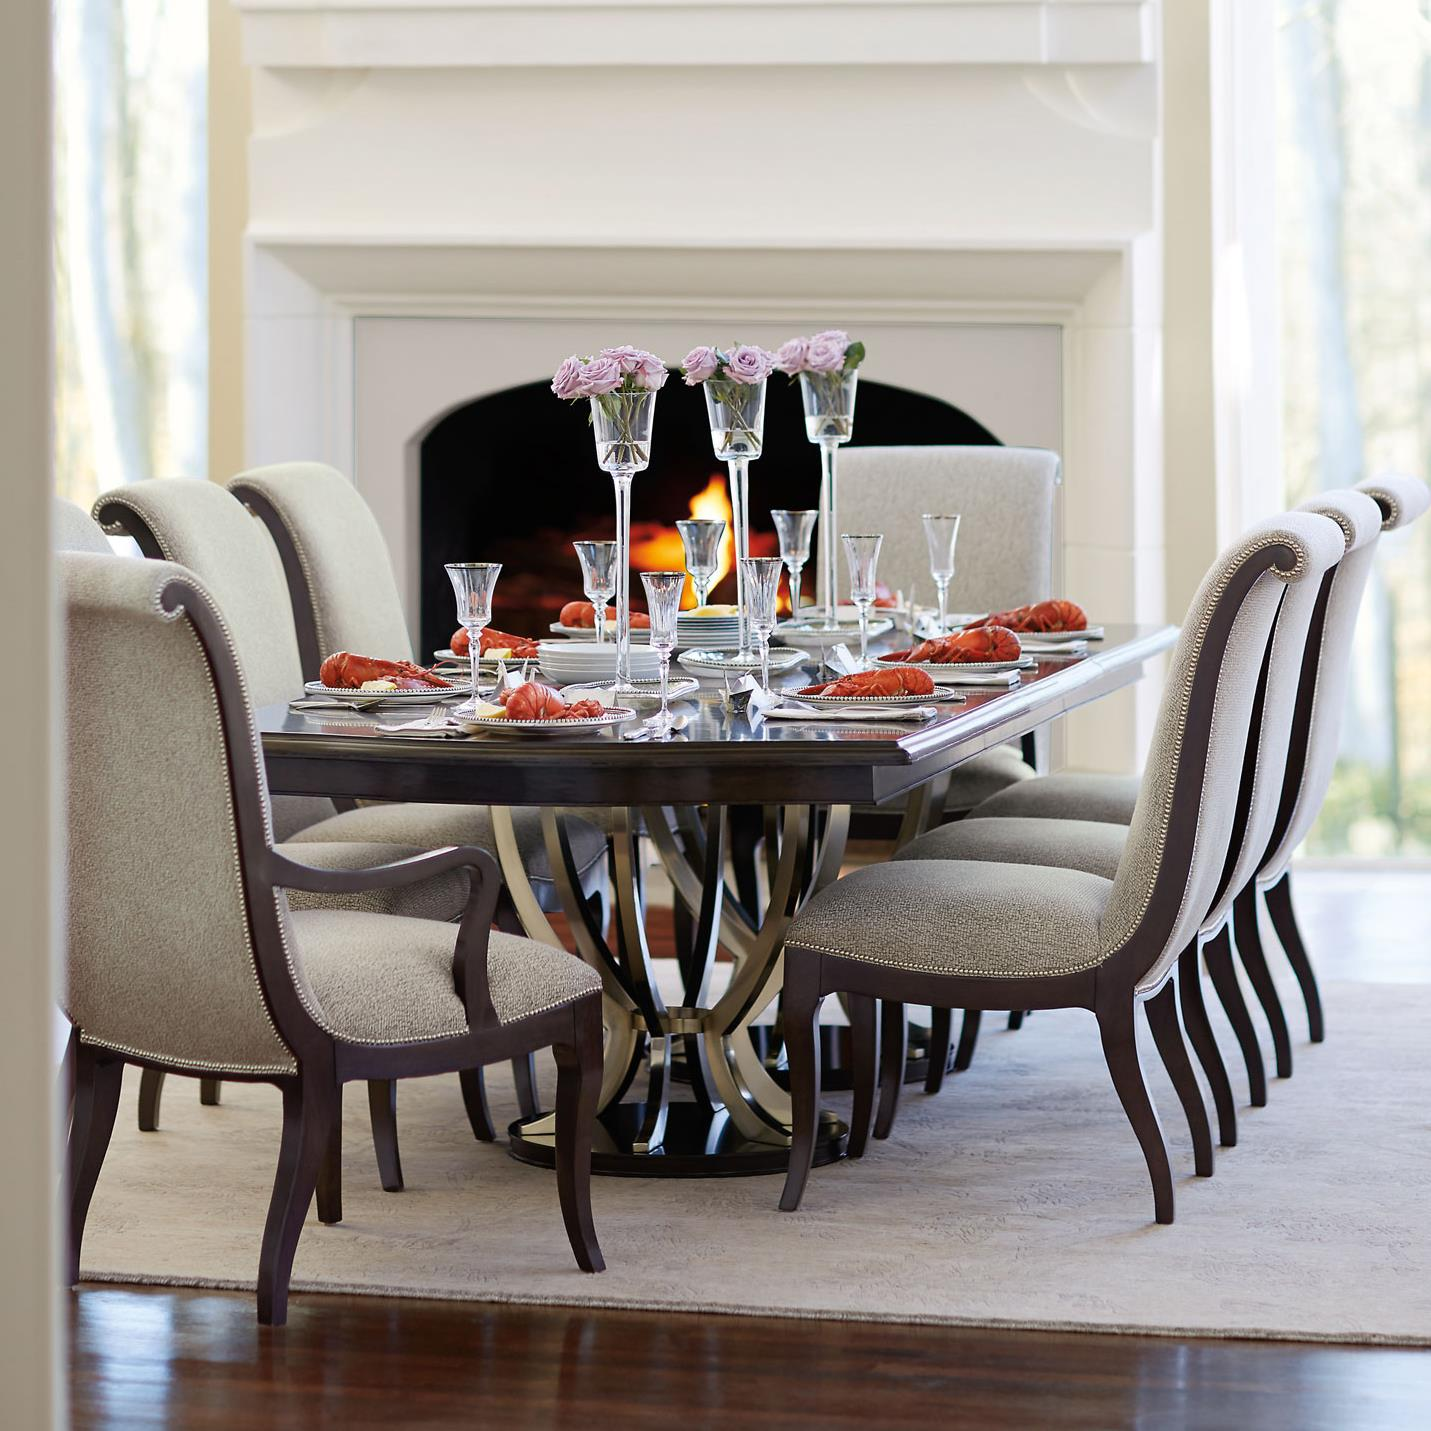 bernhardt miramont 9 piece dining set with double pedestal table and upholstered chairs. Black Bedroom Furniture Sets. Home Design Ideas